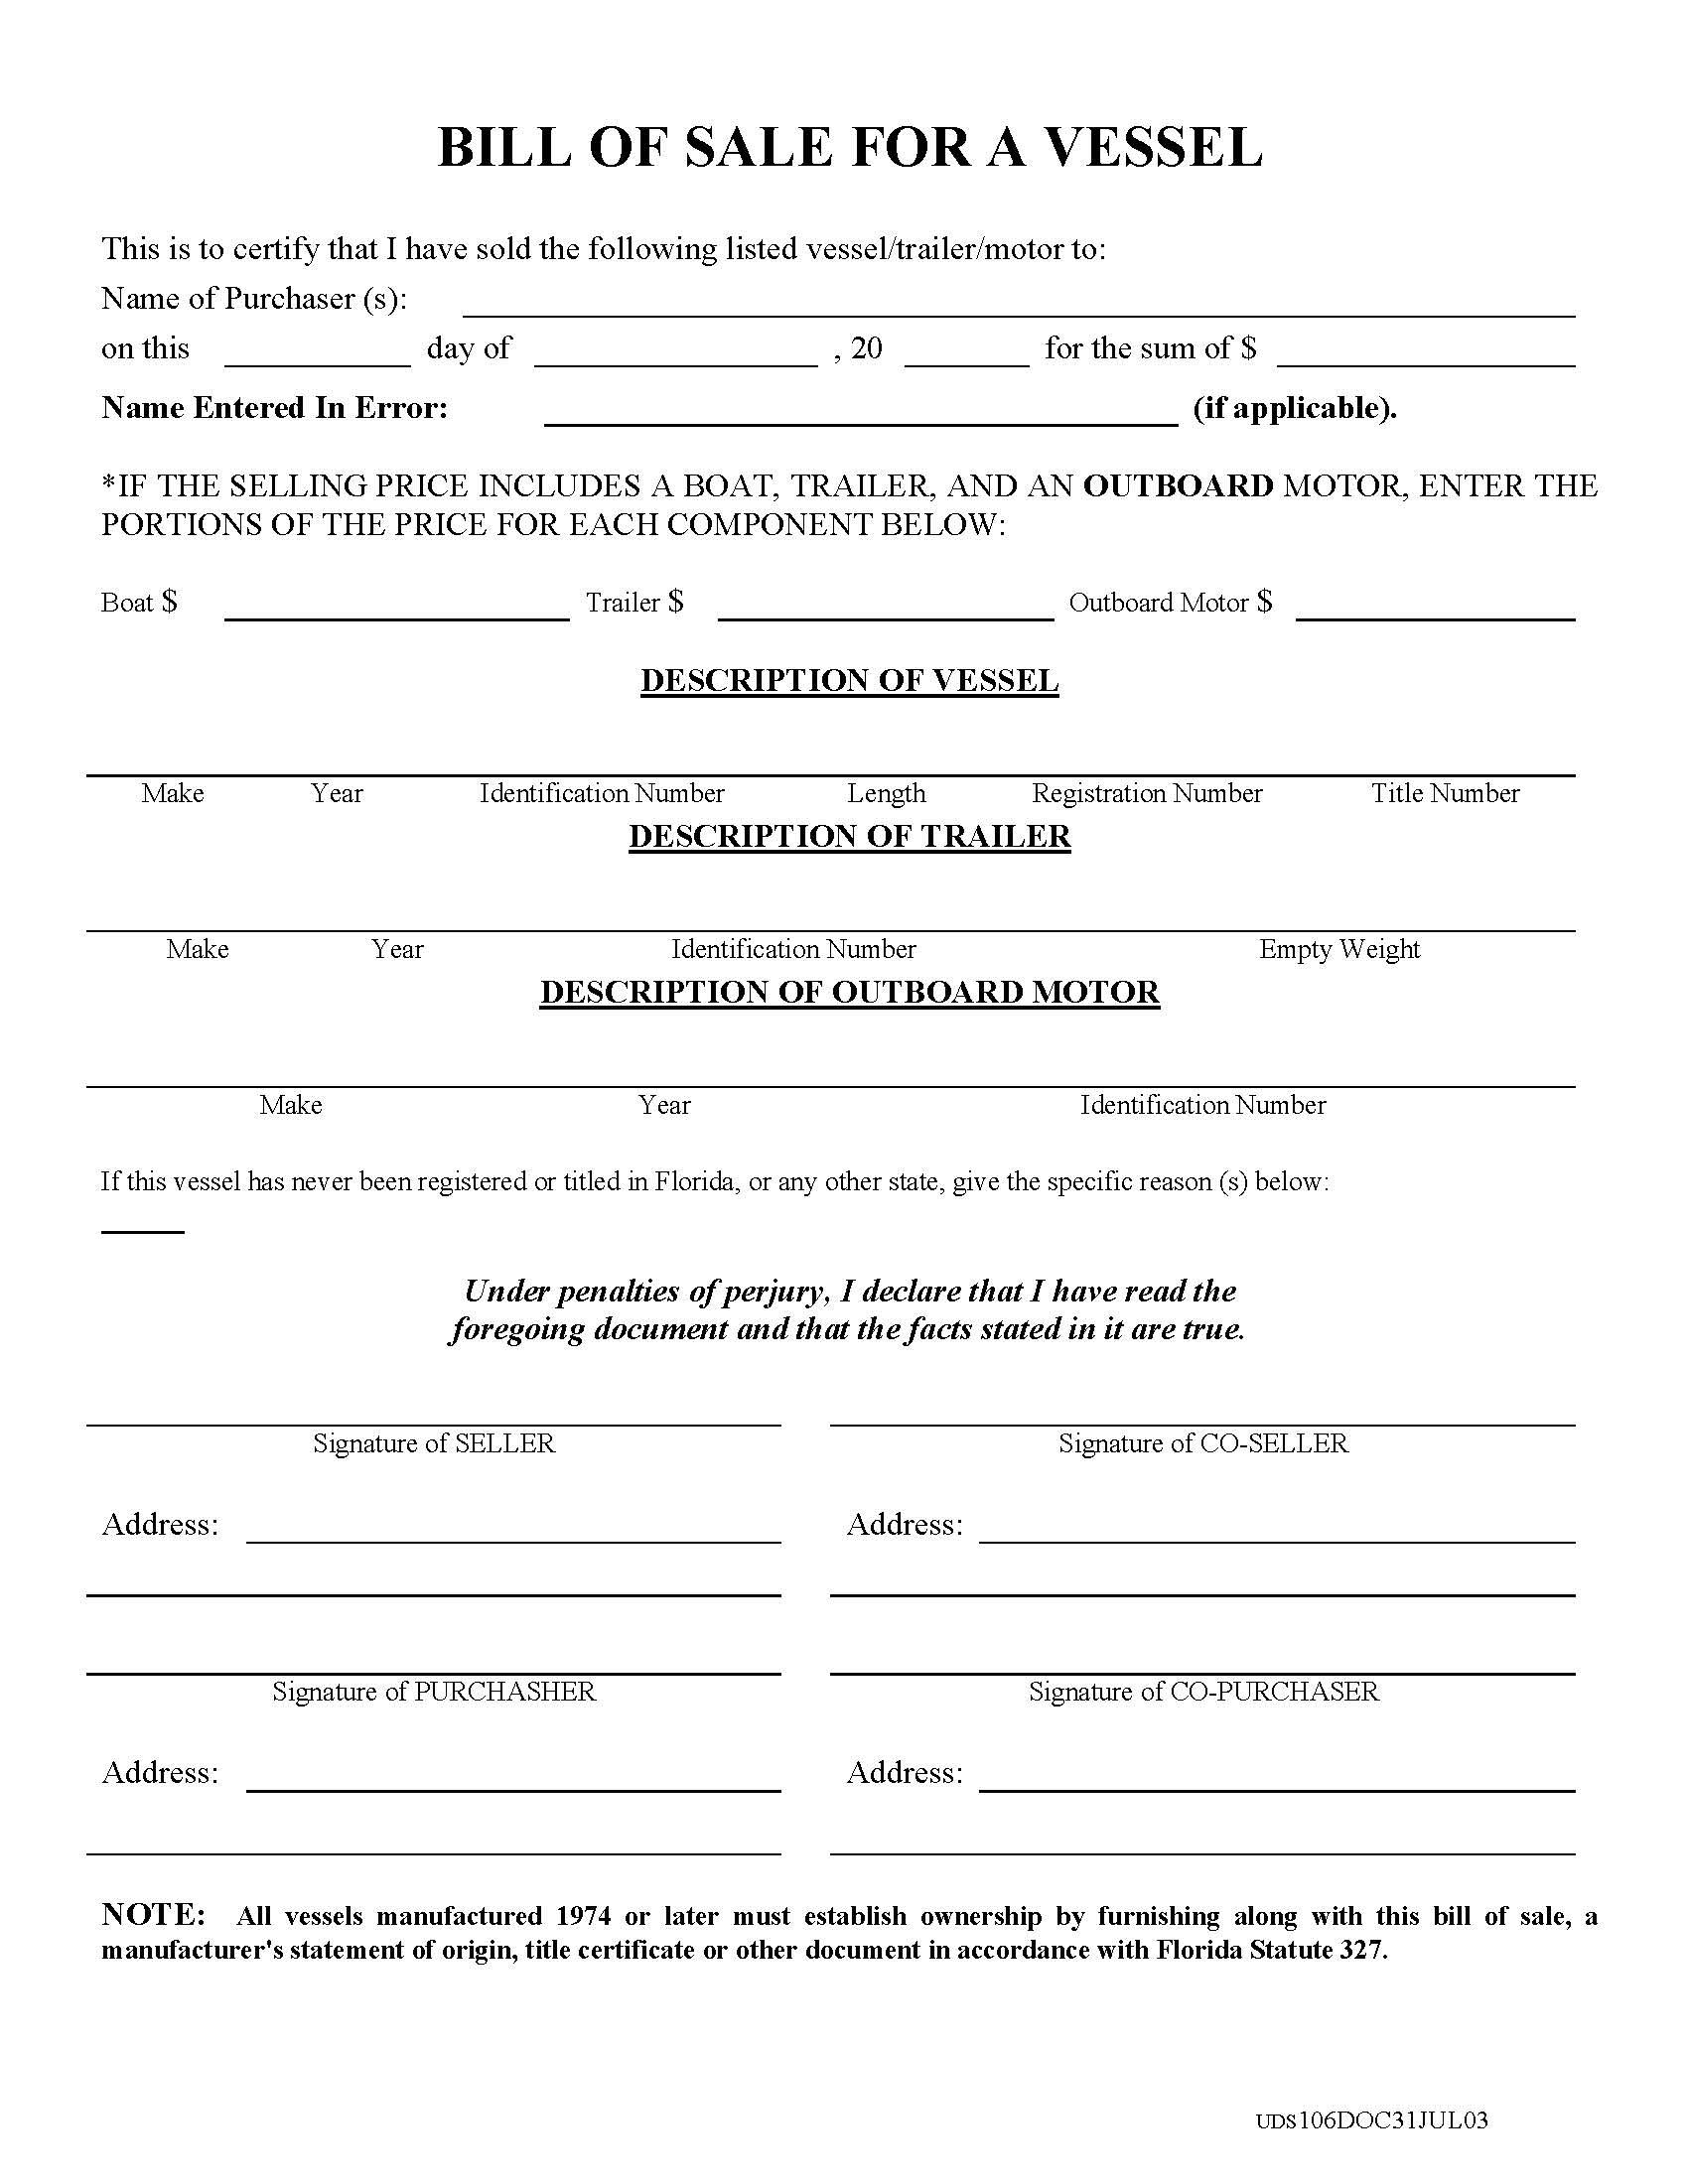 Texas boat bill of sale form template car interior design for Texas motor vehicle bill of sale